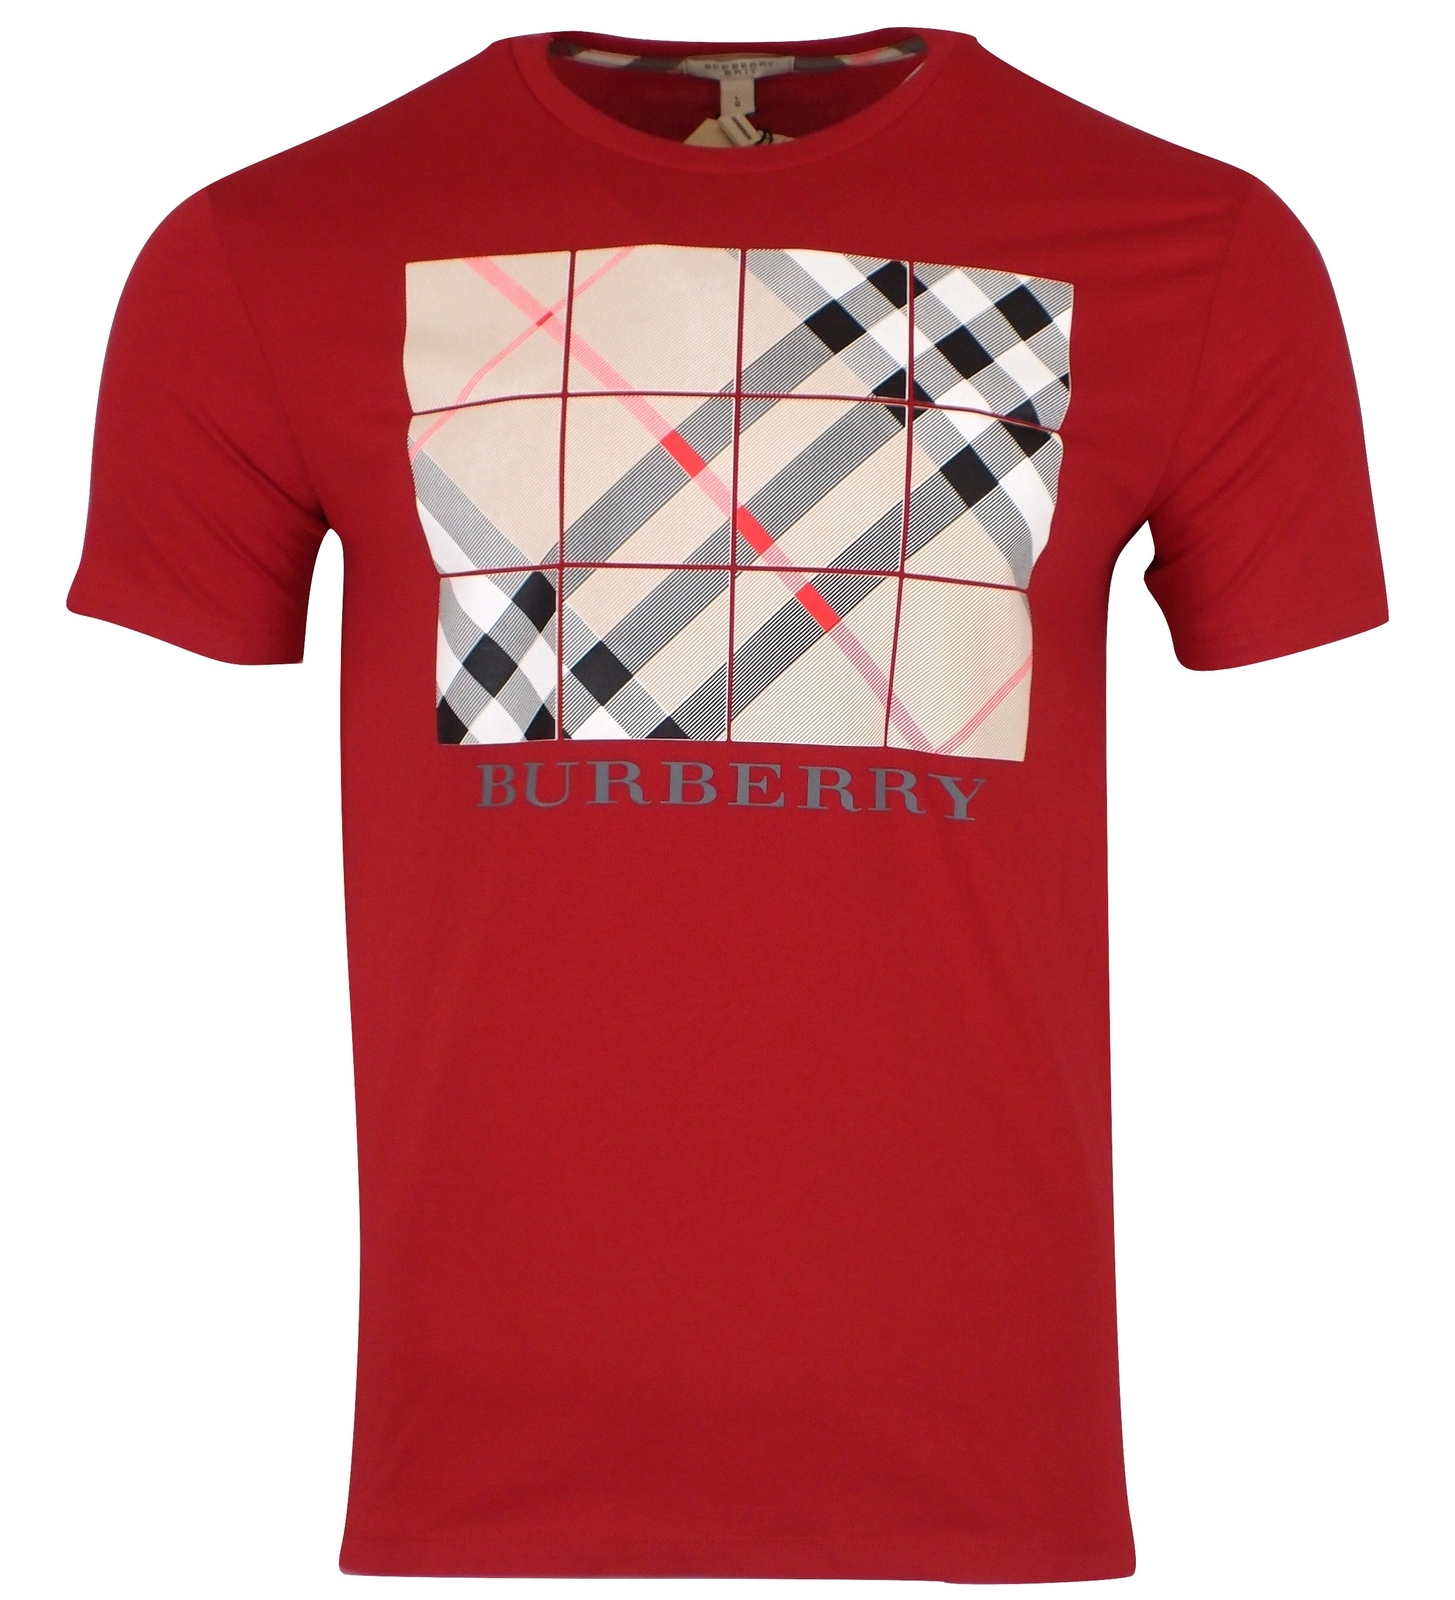 dc145b0428f63 B4 red1. B4 red1. Previous. New BURBERRY Brit Men's Short Sleeve Cotton  Graphic T-Shirt - RED - Large